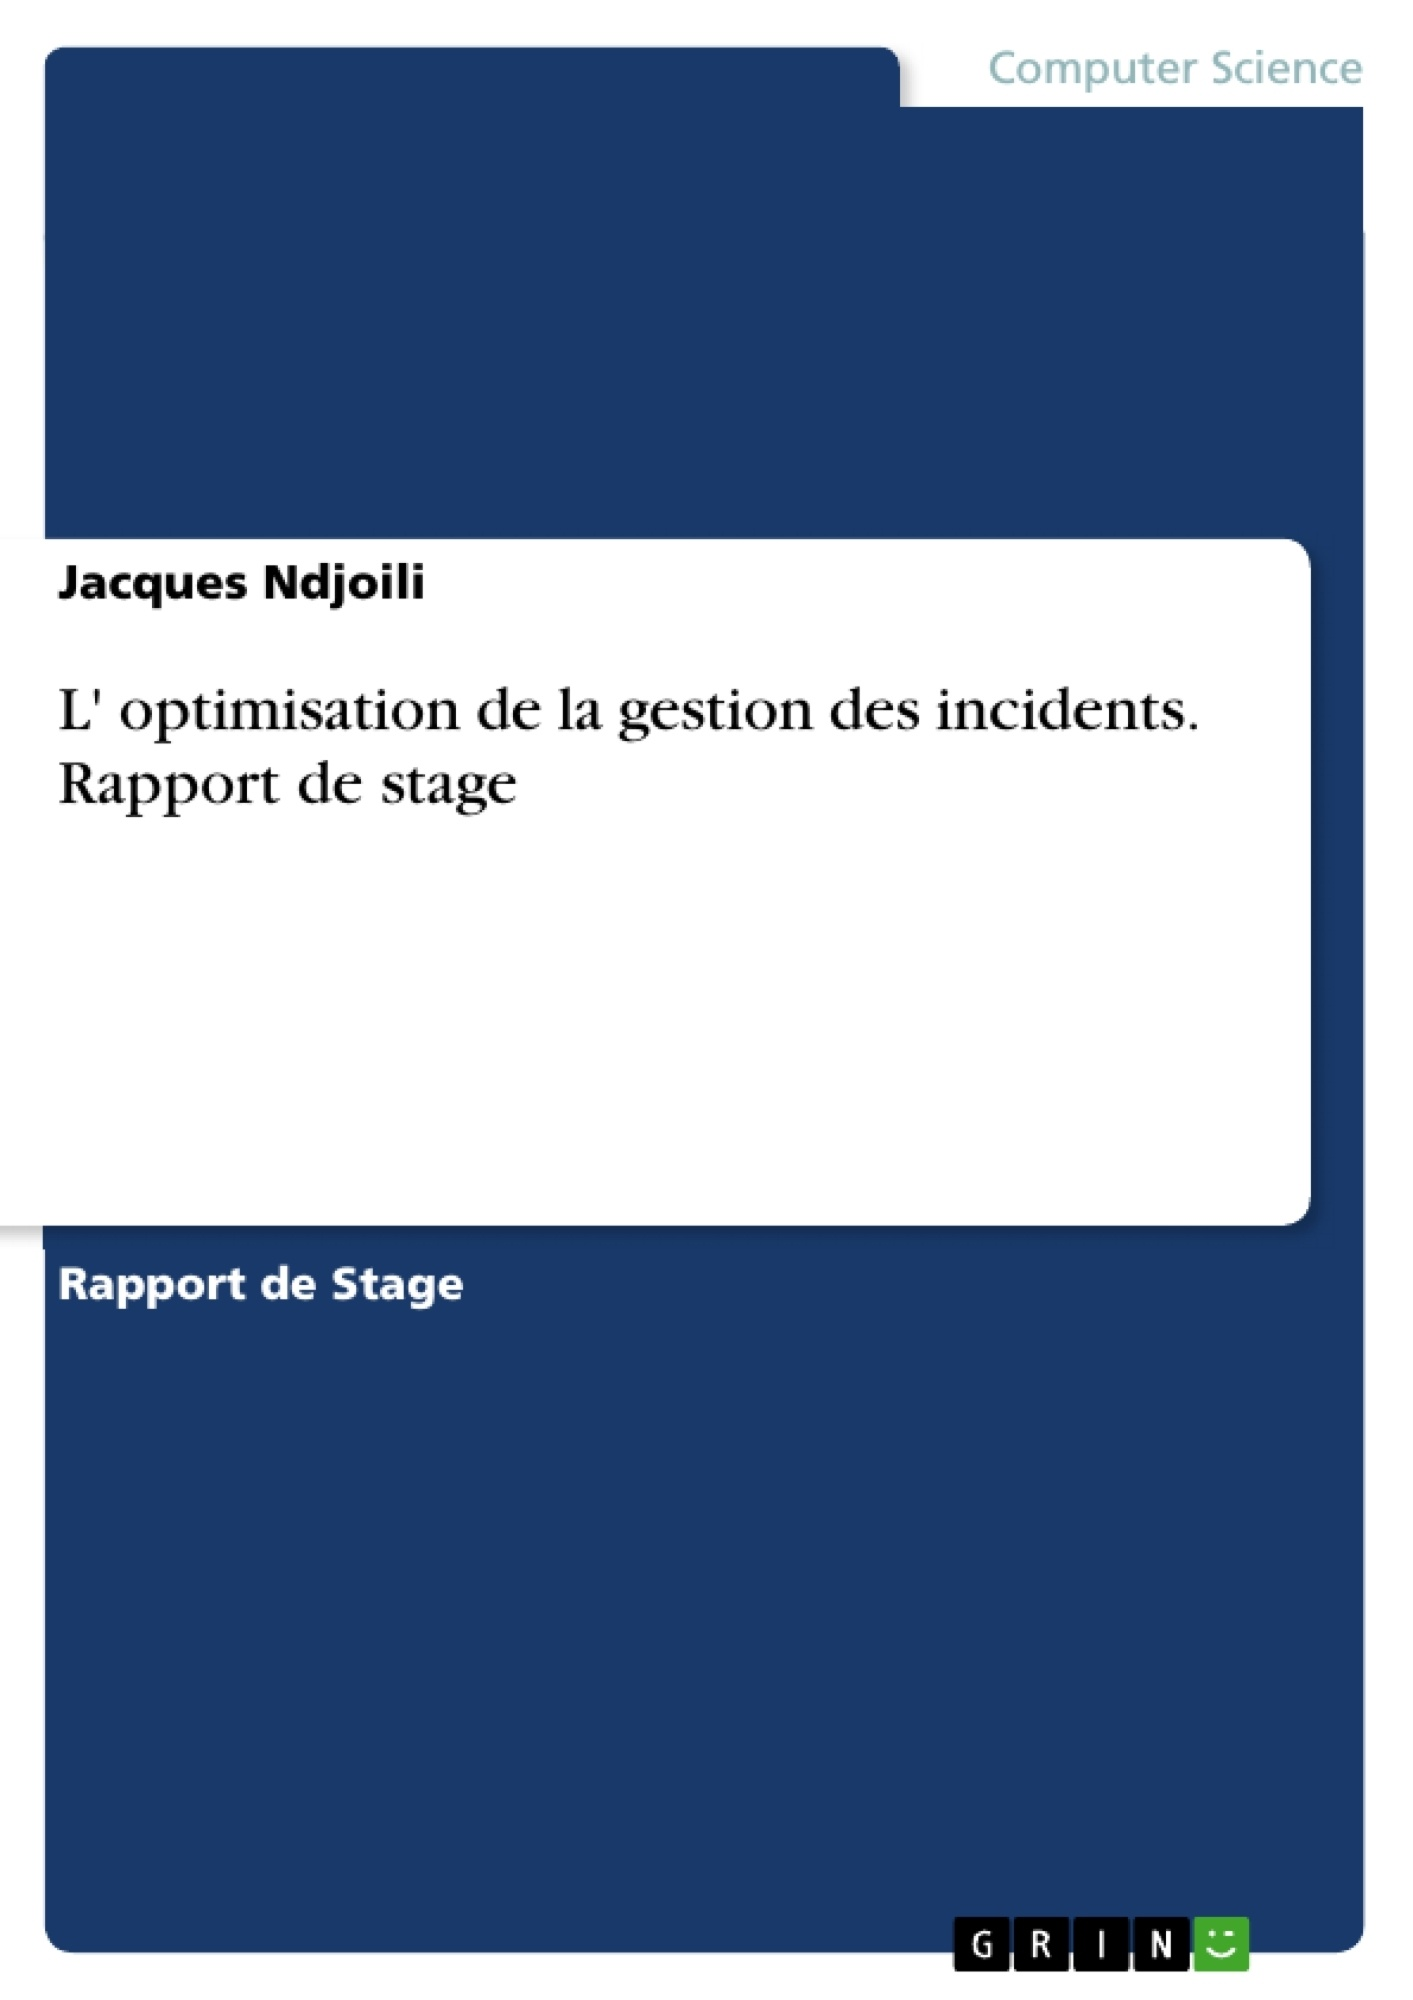 Titre: L' optimisation de la gestion des incidents. Rapport de stage